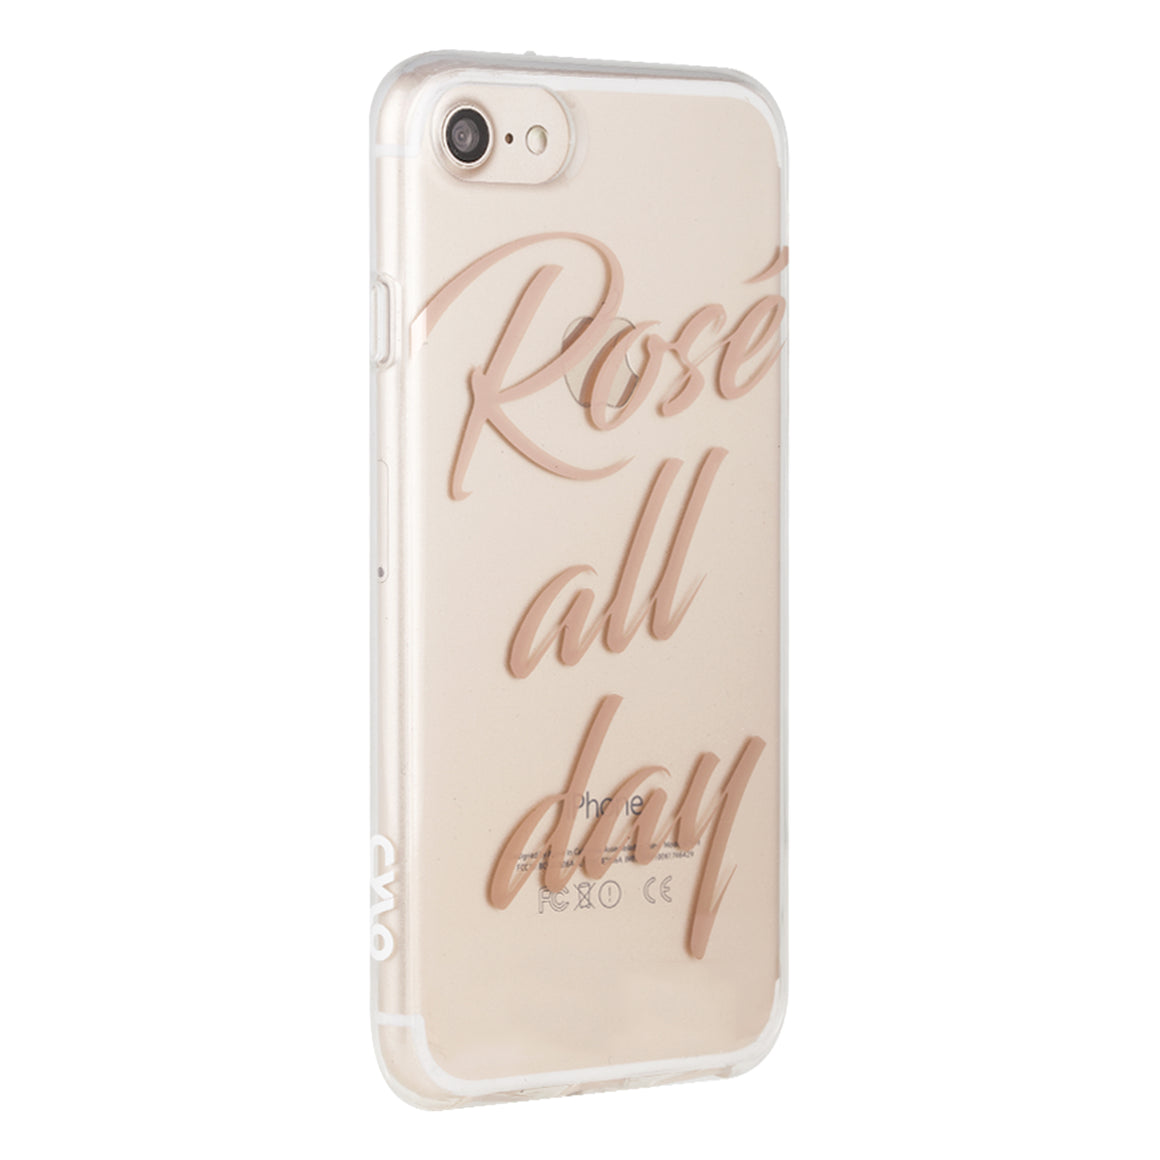 Rosé All Day POP